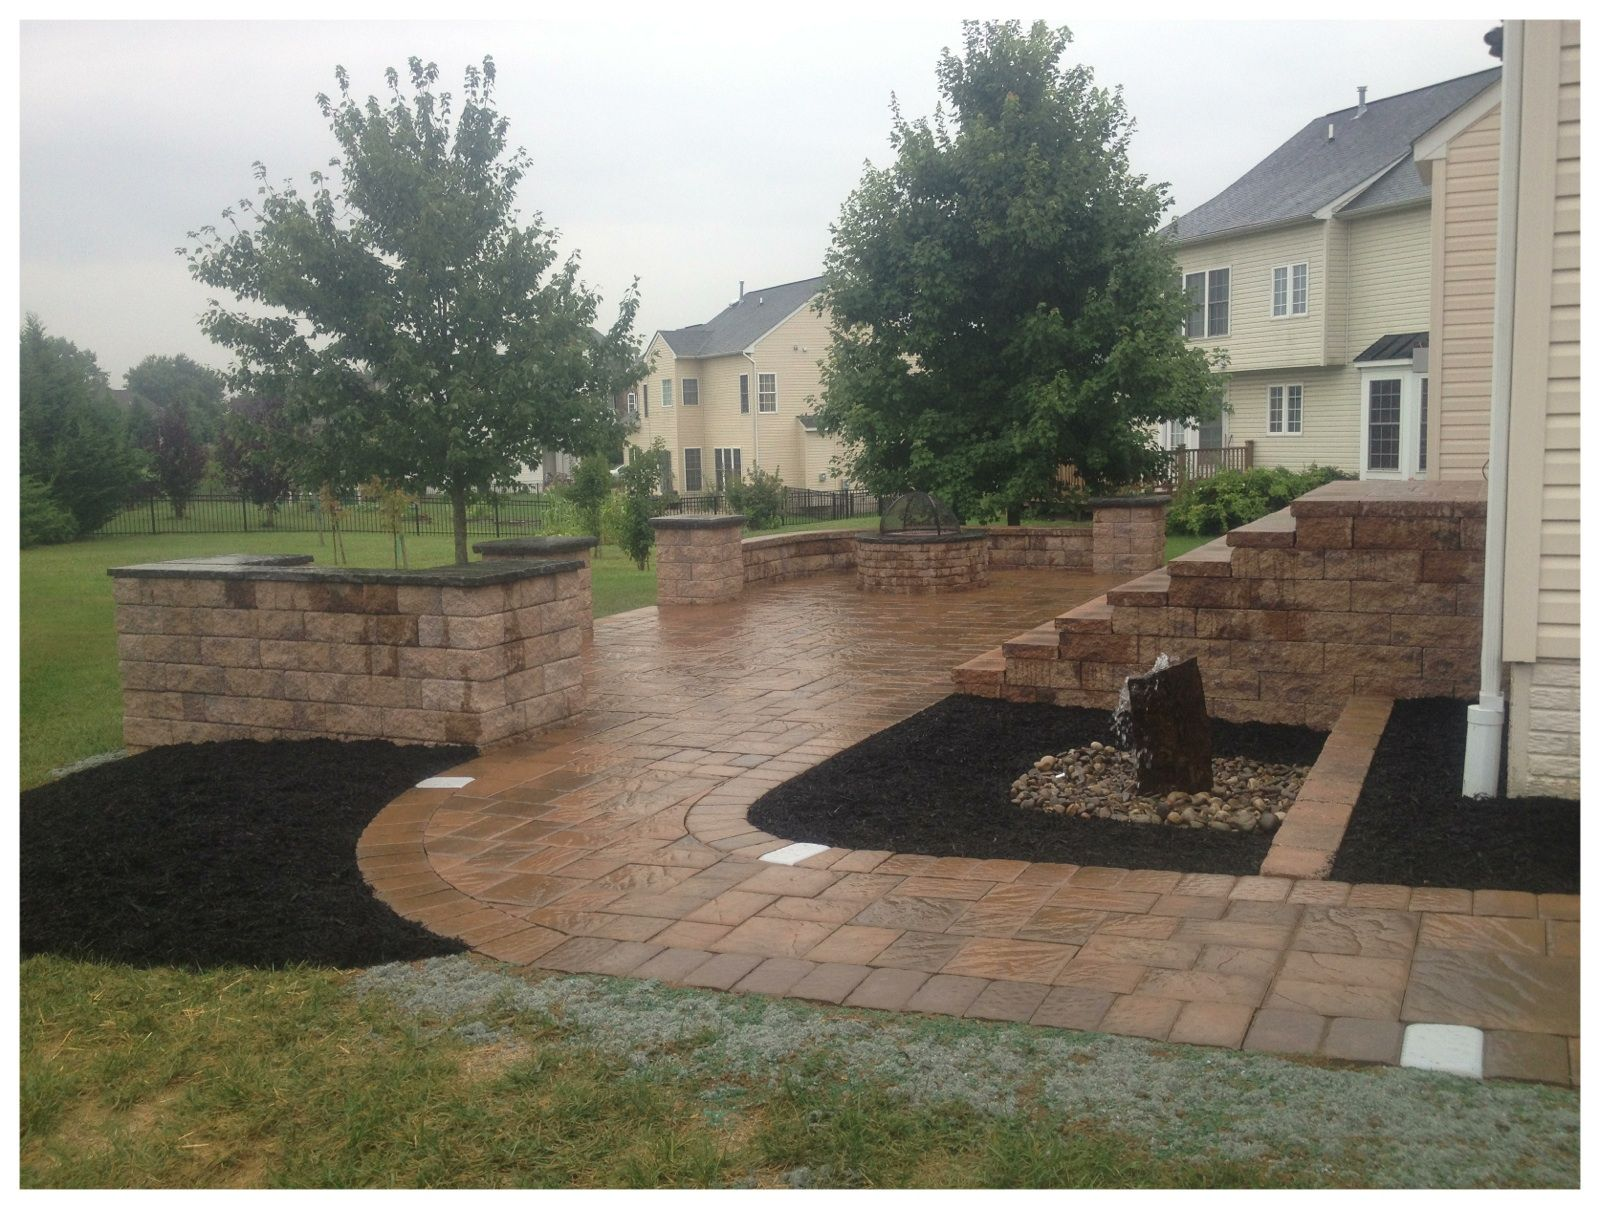 Gallery - Kingdom Landscaping | MD & PA | Patio, Paver ... on Kingdom Outdoor Living id=13557